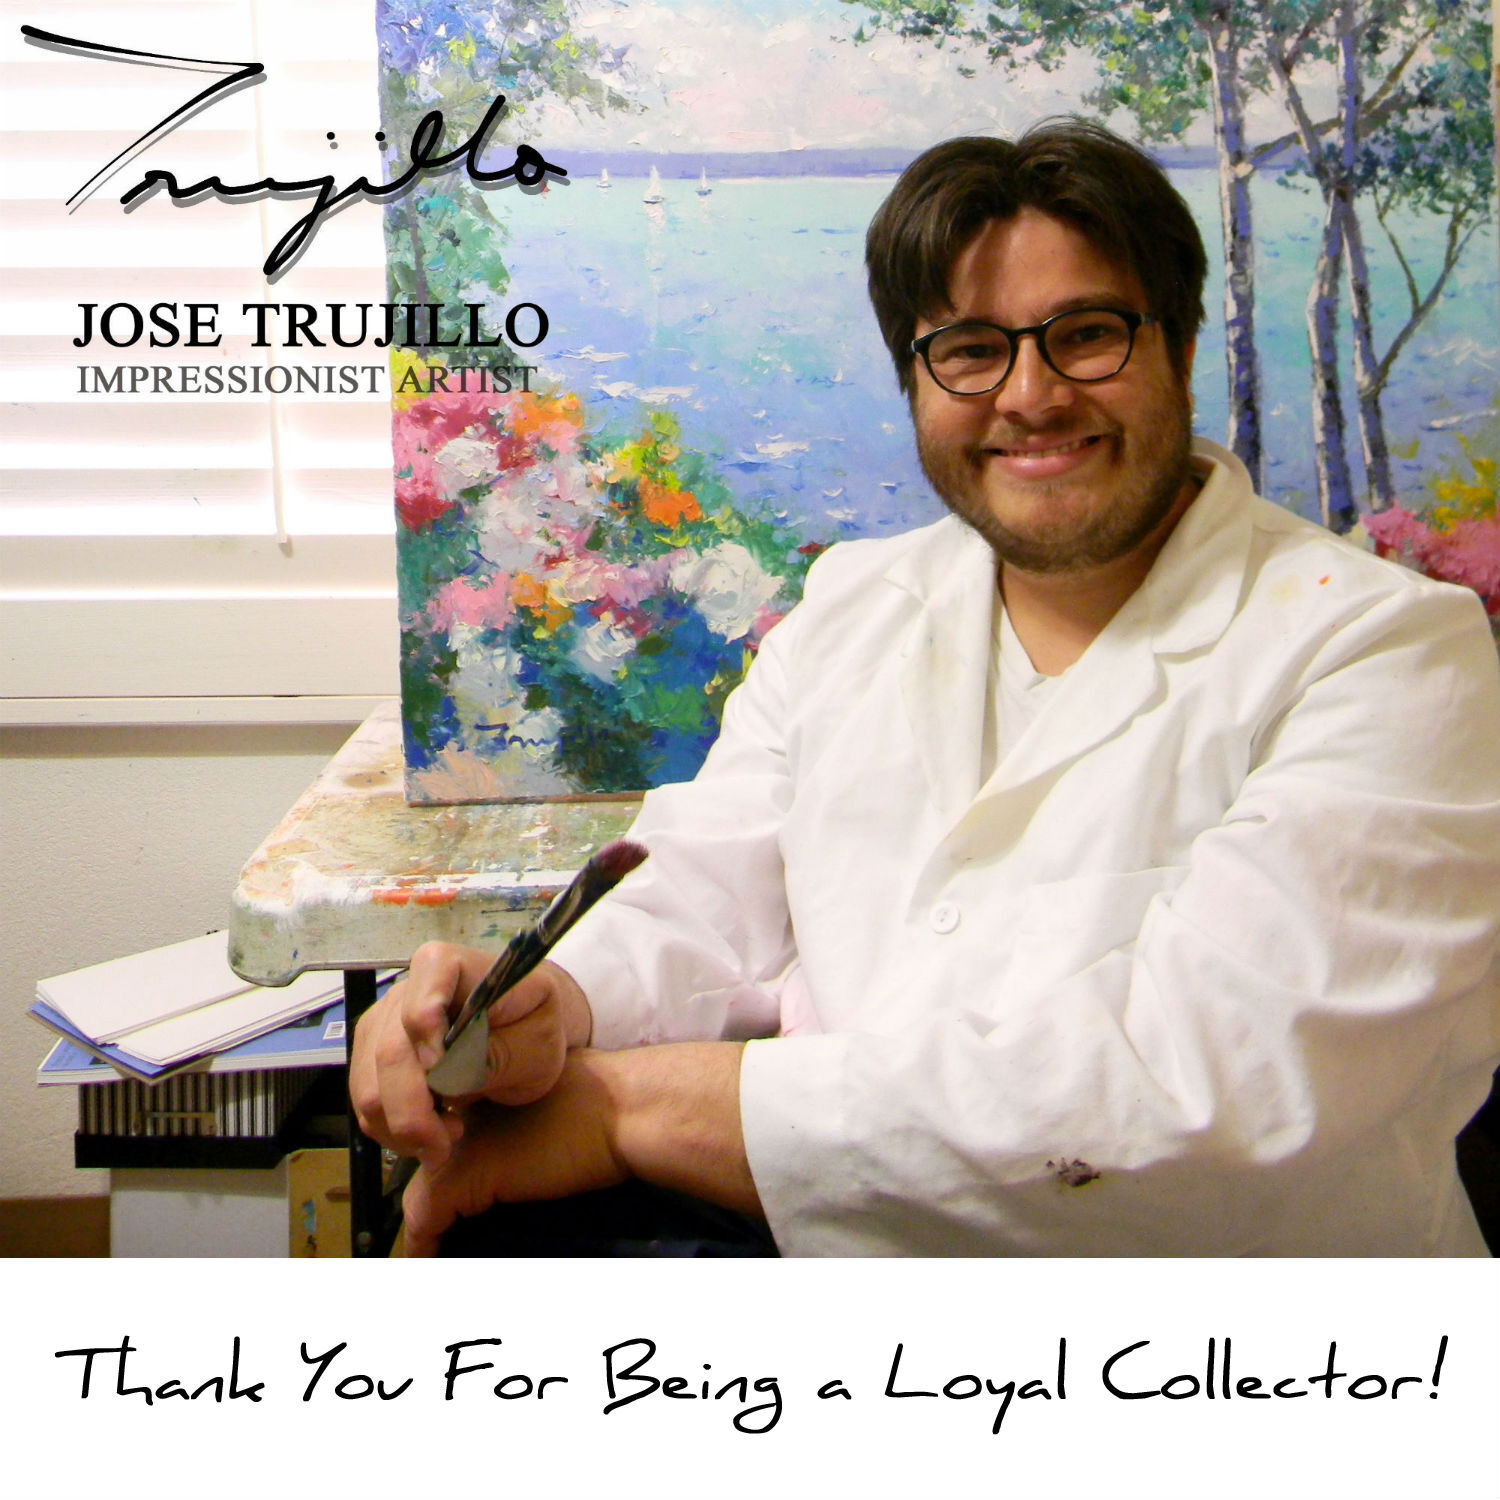 JOSE TRUJILLO Oil Painting Abstract Portrait Hat Contemporary Expressionist ART - $179.00